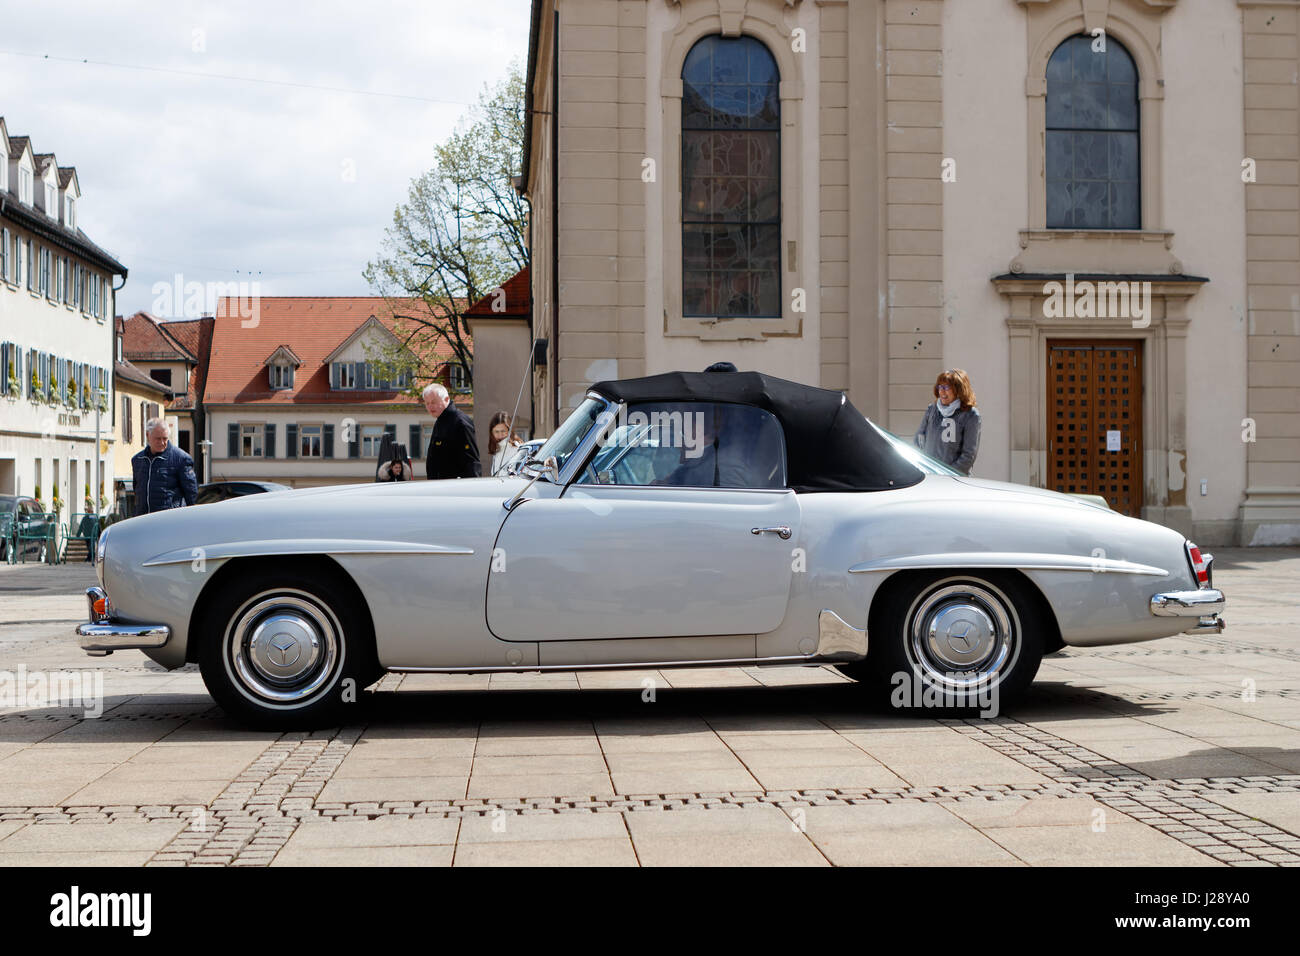 LUDWIGSBURG, GERMANY - APRIL 23, 2017: Mercedes Benz oldtimer car at the eMotionen event on April 23, 2017 in Ludwigsburg, - Stock Image